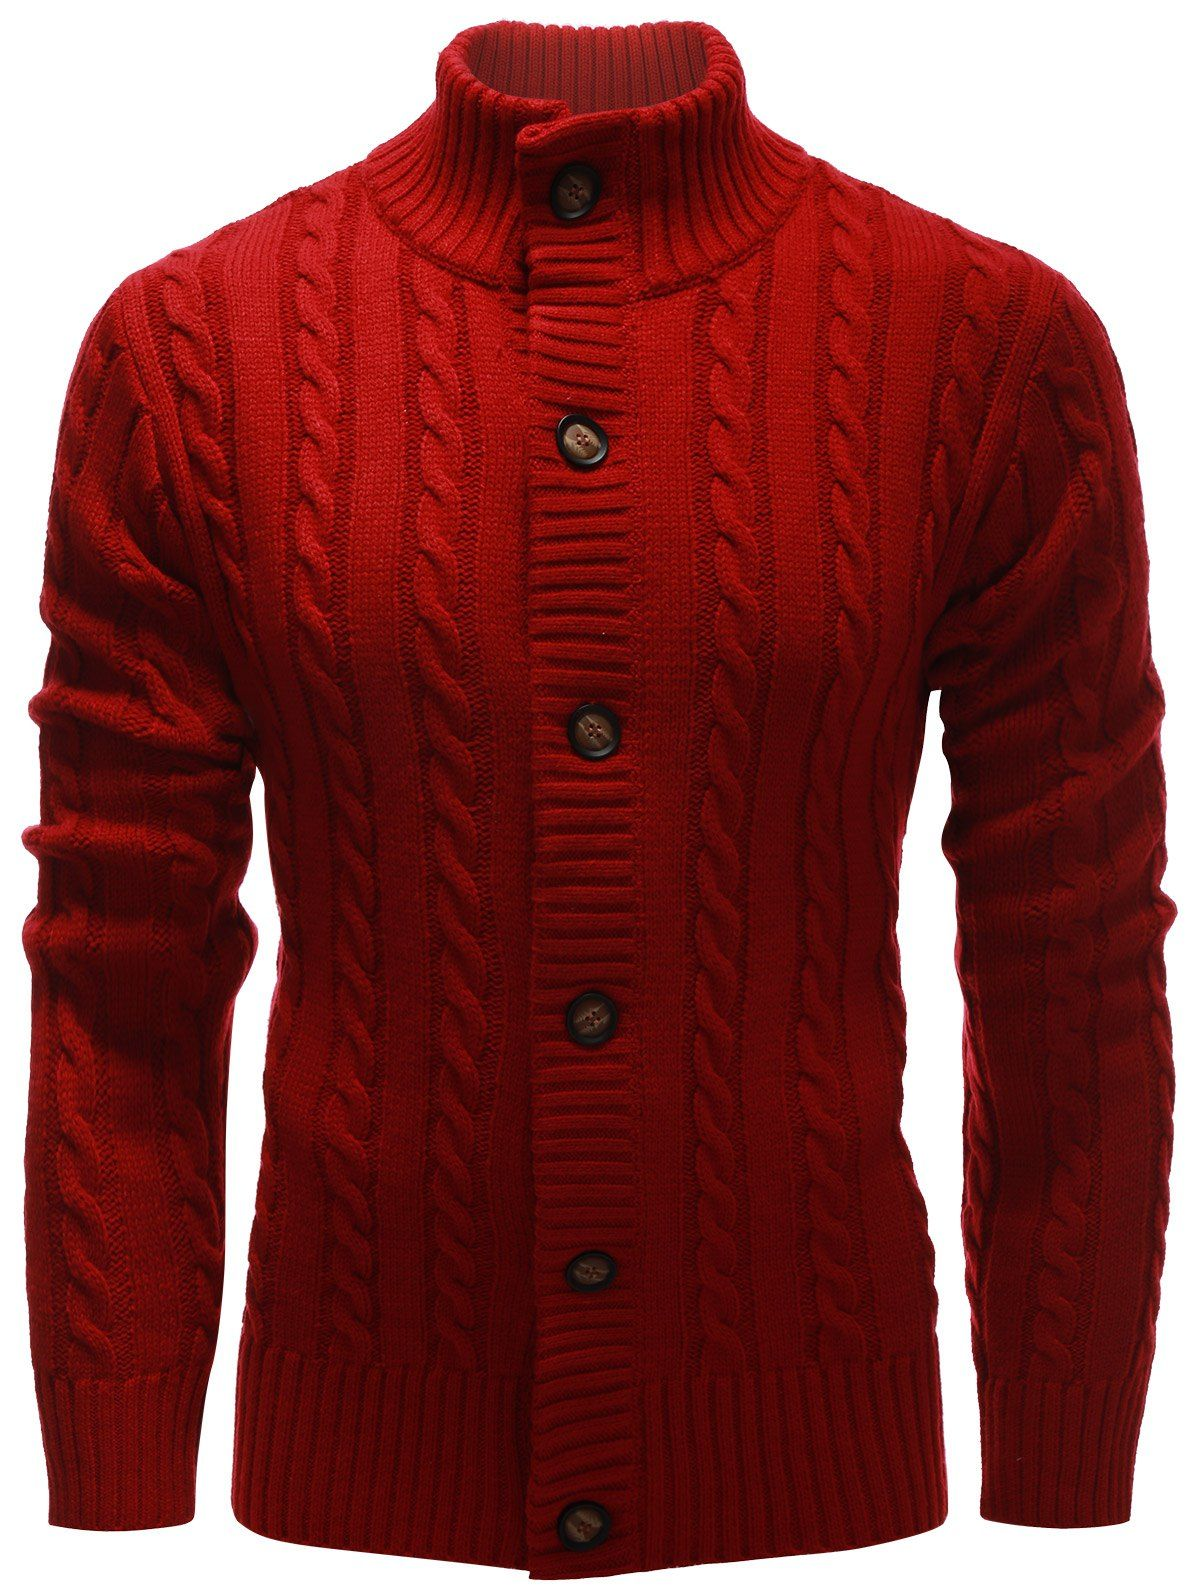 High Neck Button Up Twist Knit Cardigan | Male cardigan, Male ...